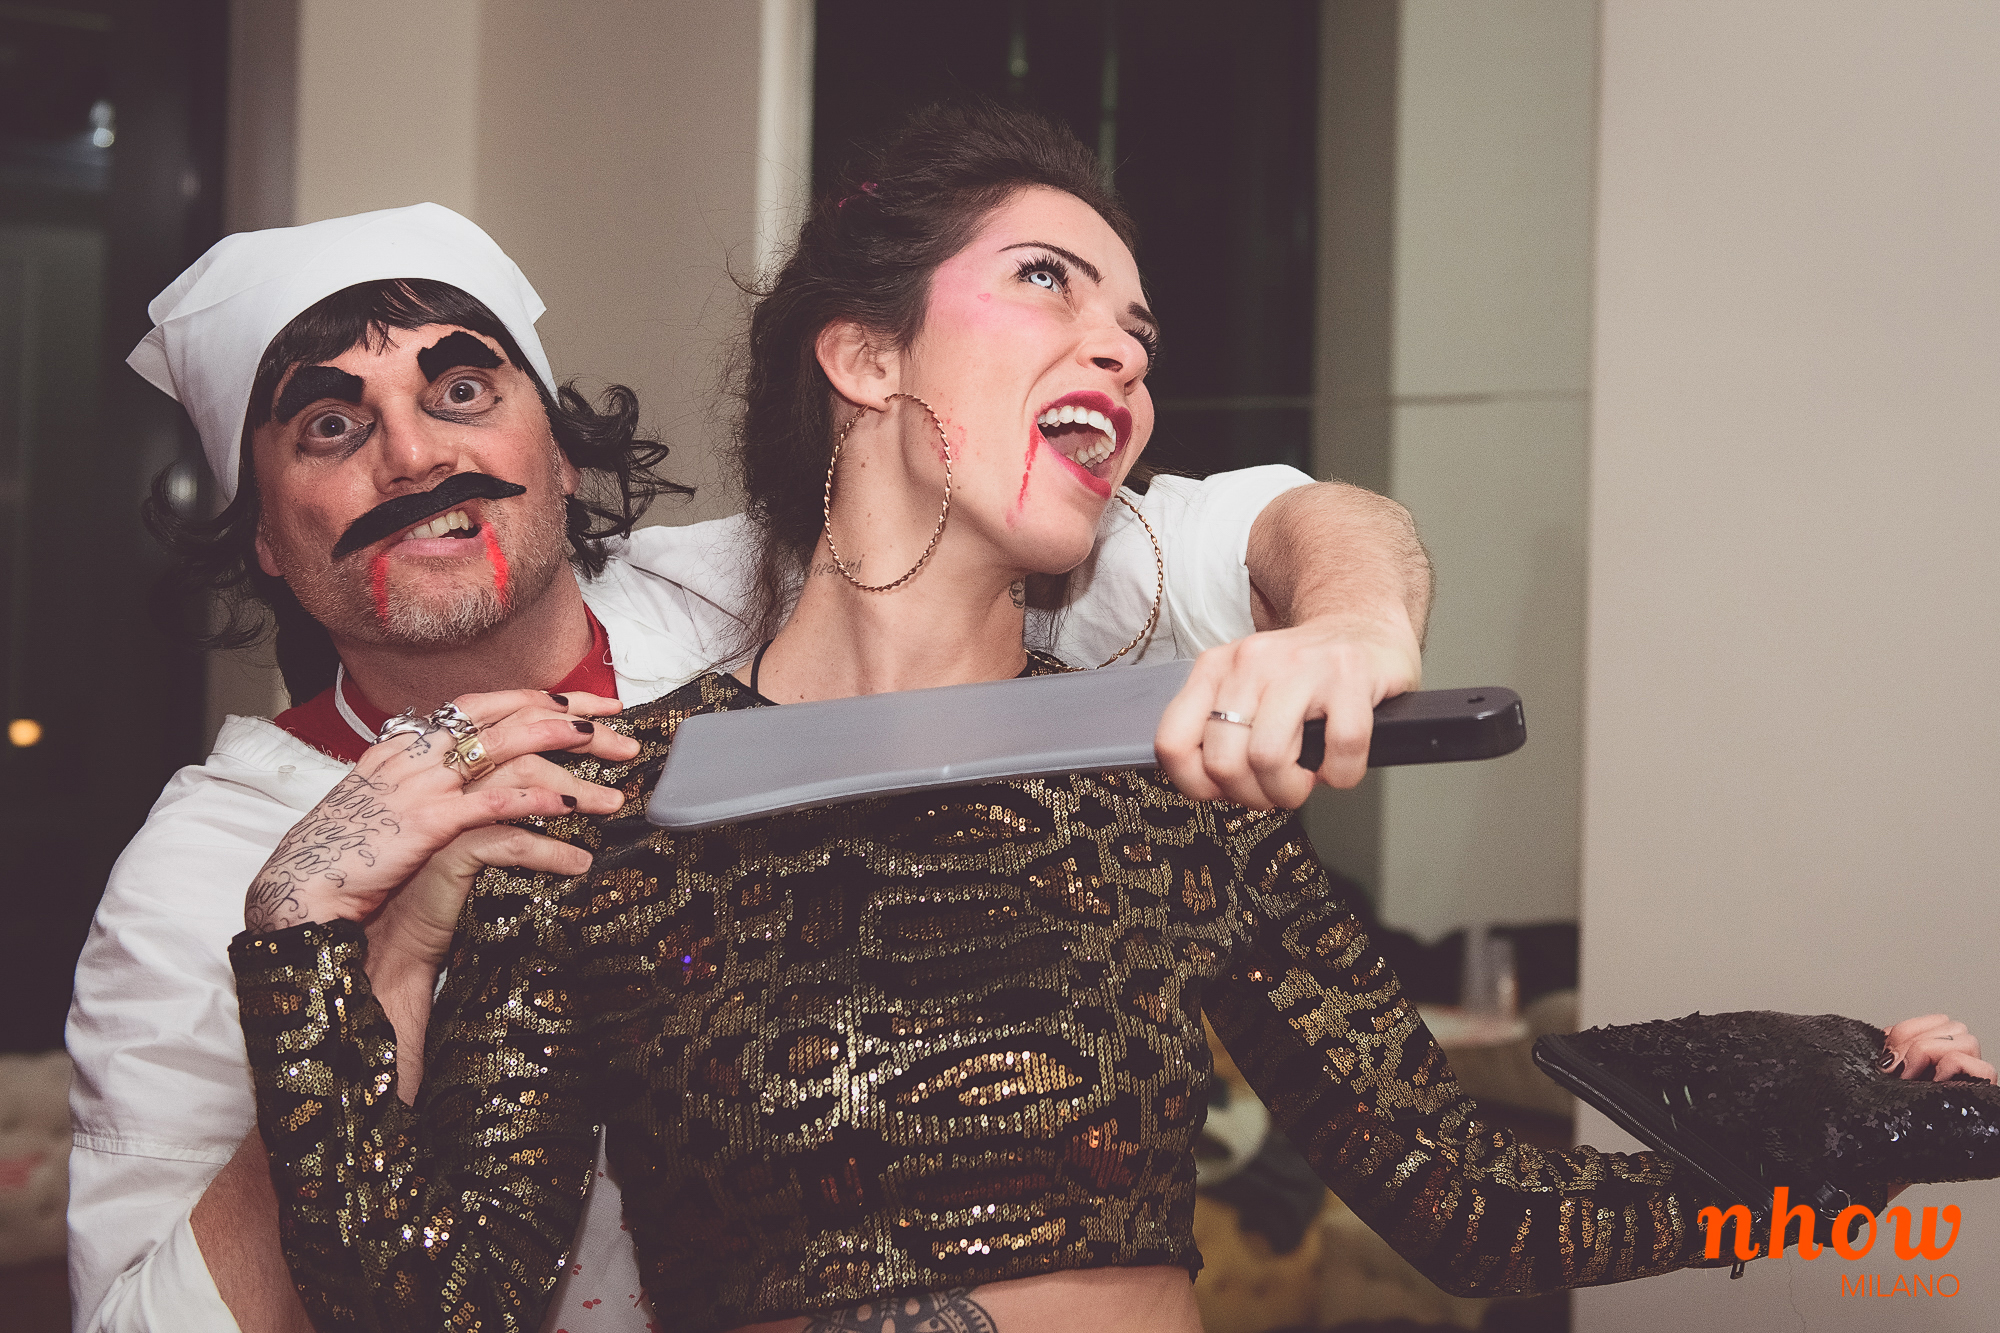 Stranger 80's Halloween Private Party Milan | YOUparti nhow hotel tortona milano